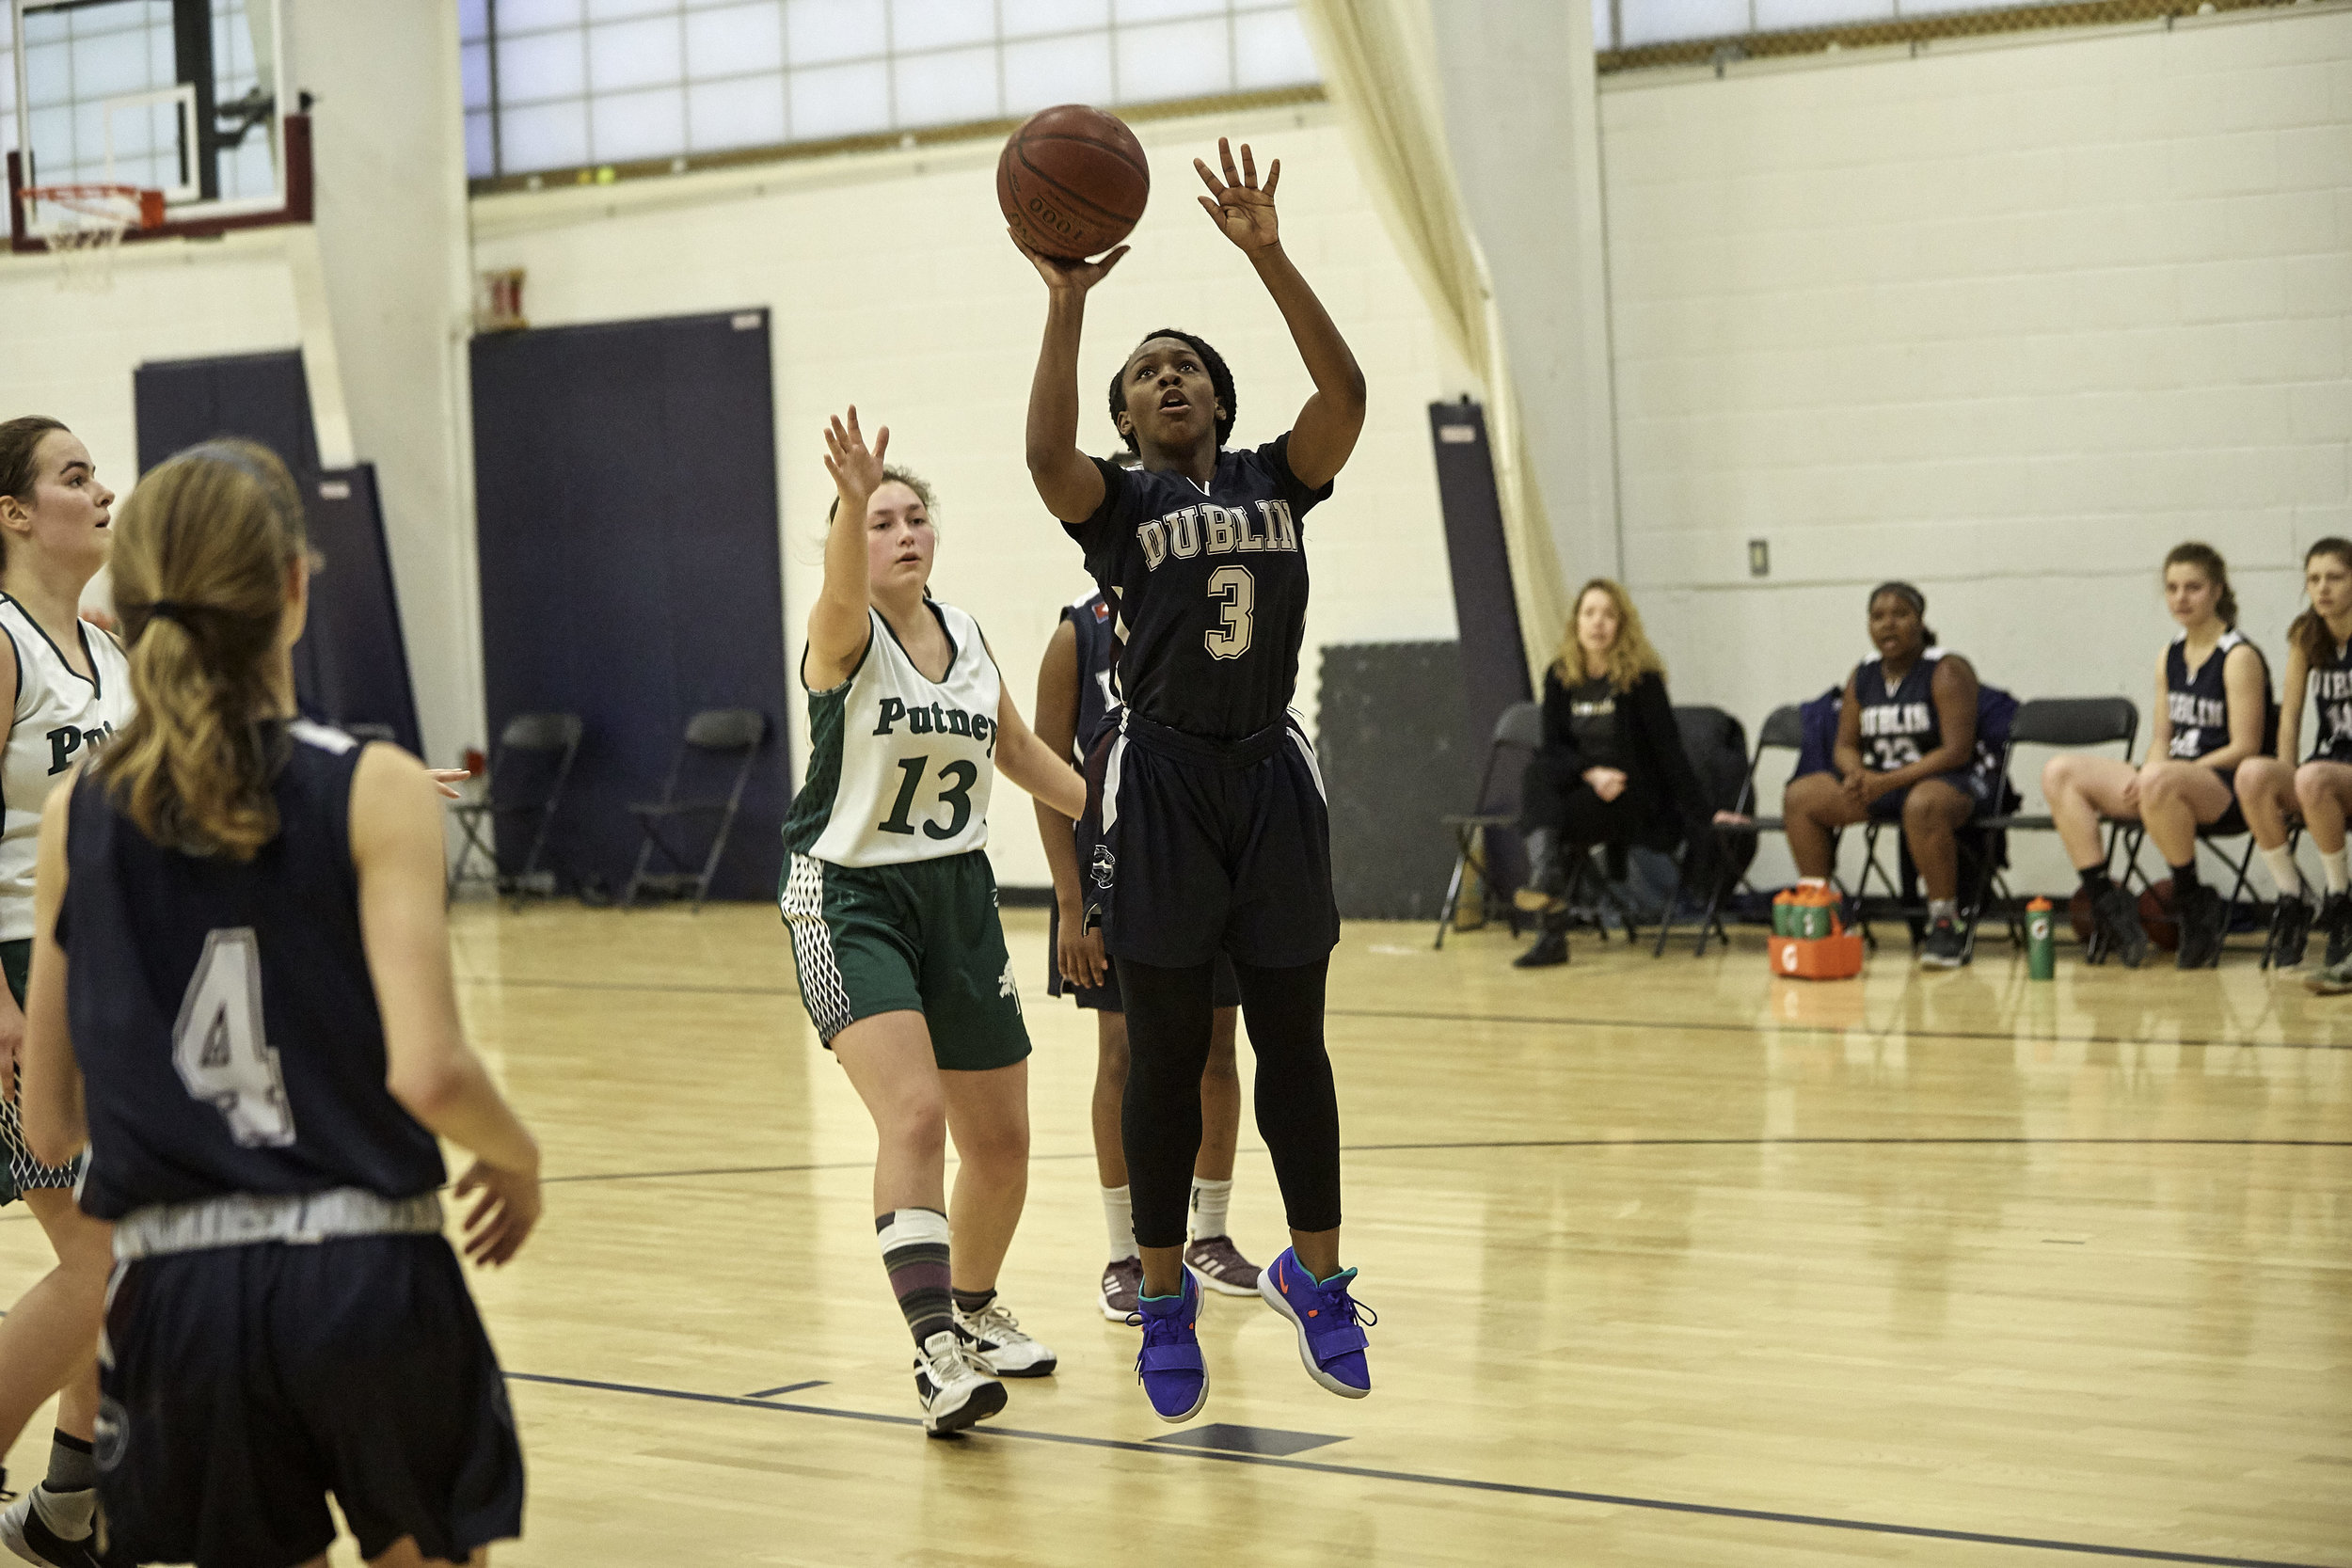 Basketball vs Putney School, February 9, 2019 - 167530.jpg